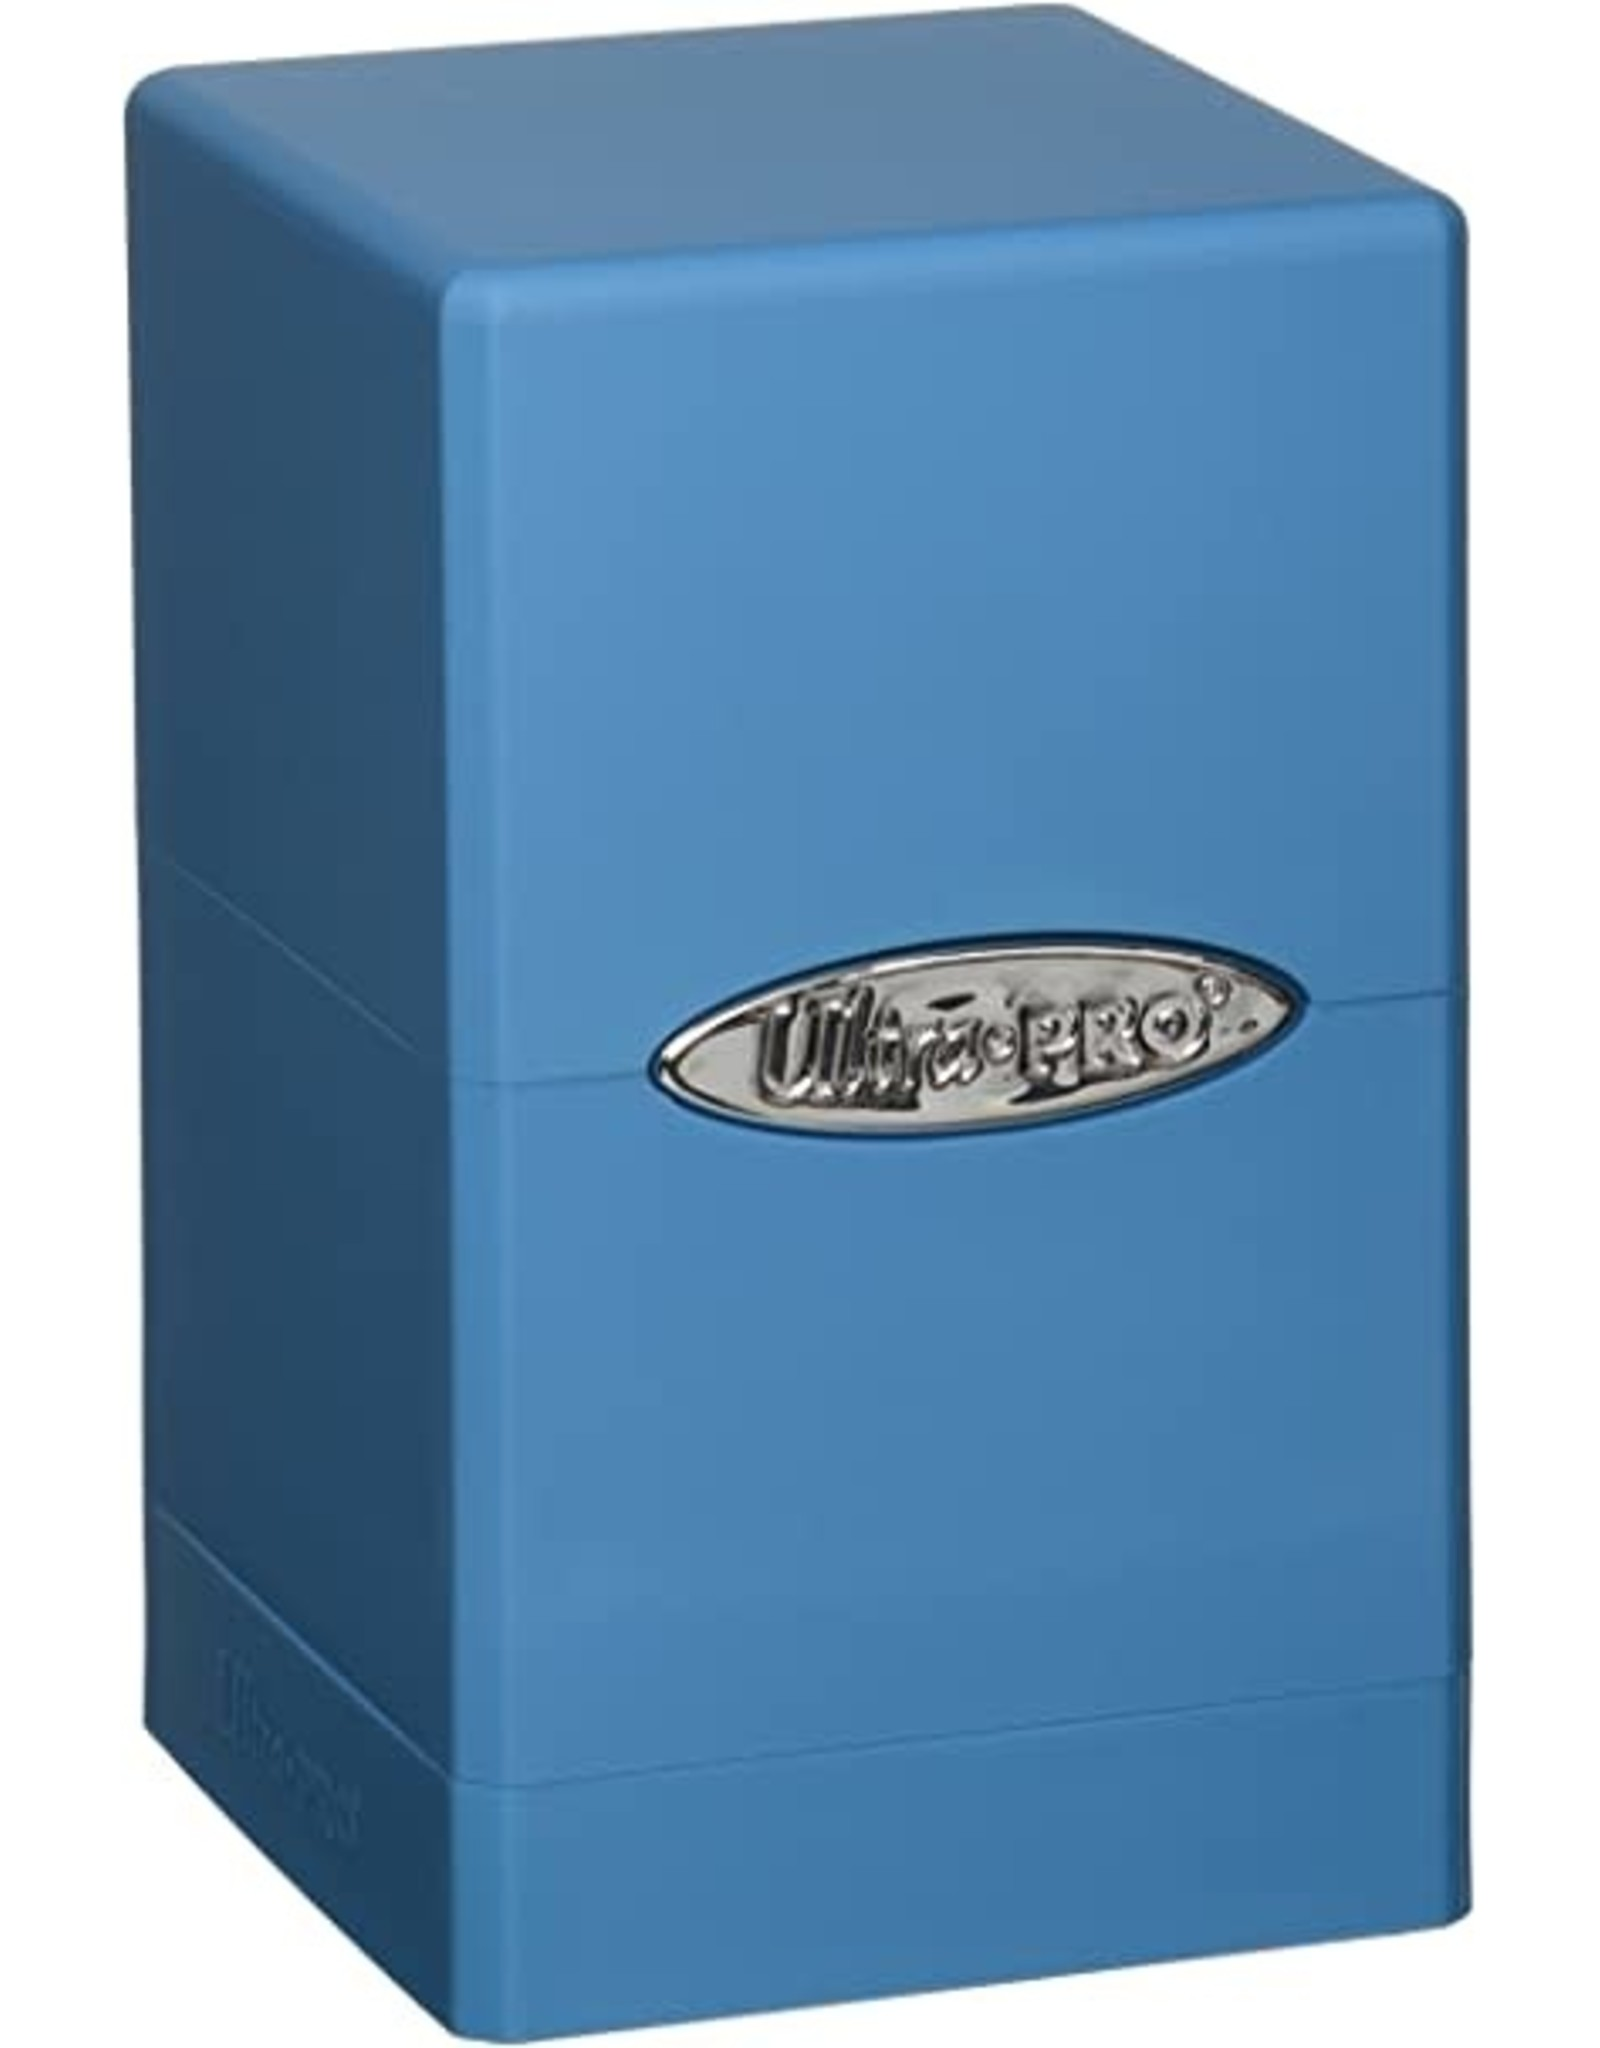 Ultra Pro Ultra Pro: Satin Tower Light Blue Deck Box